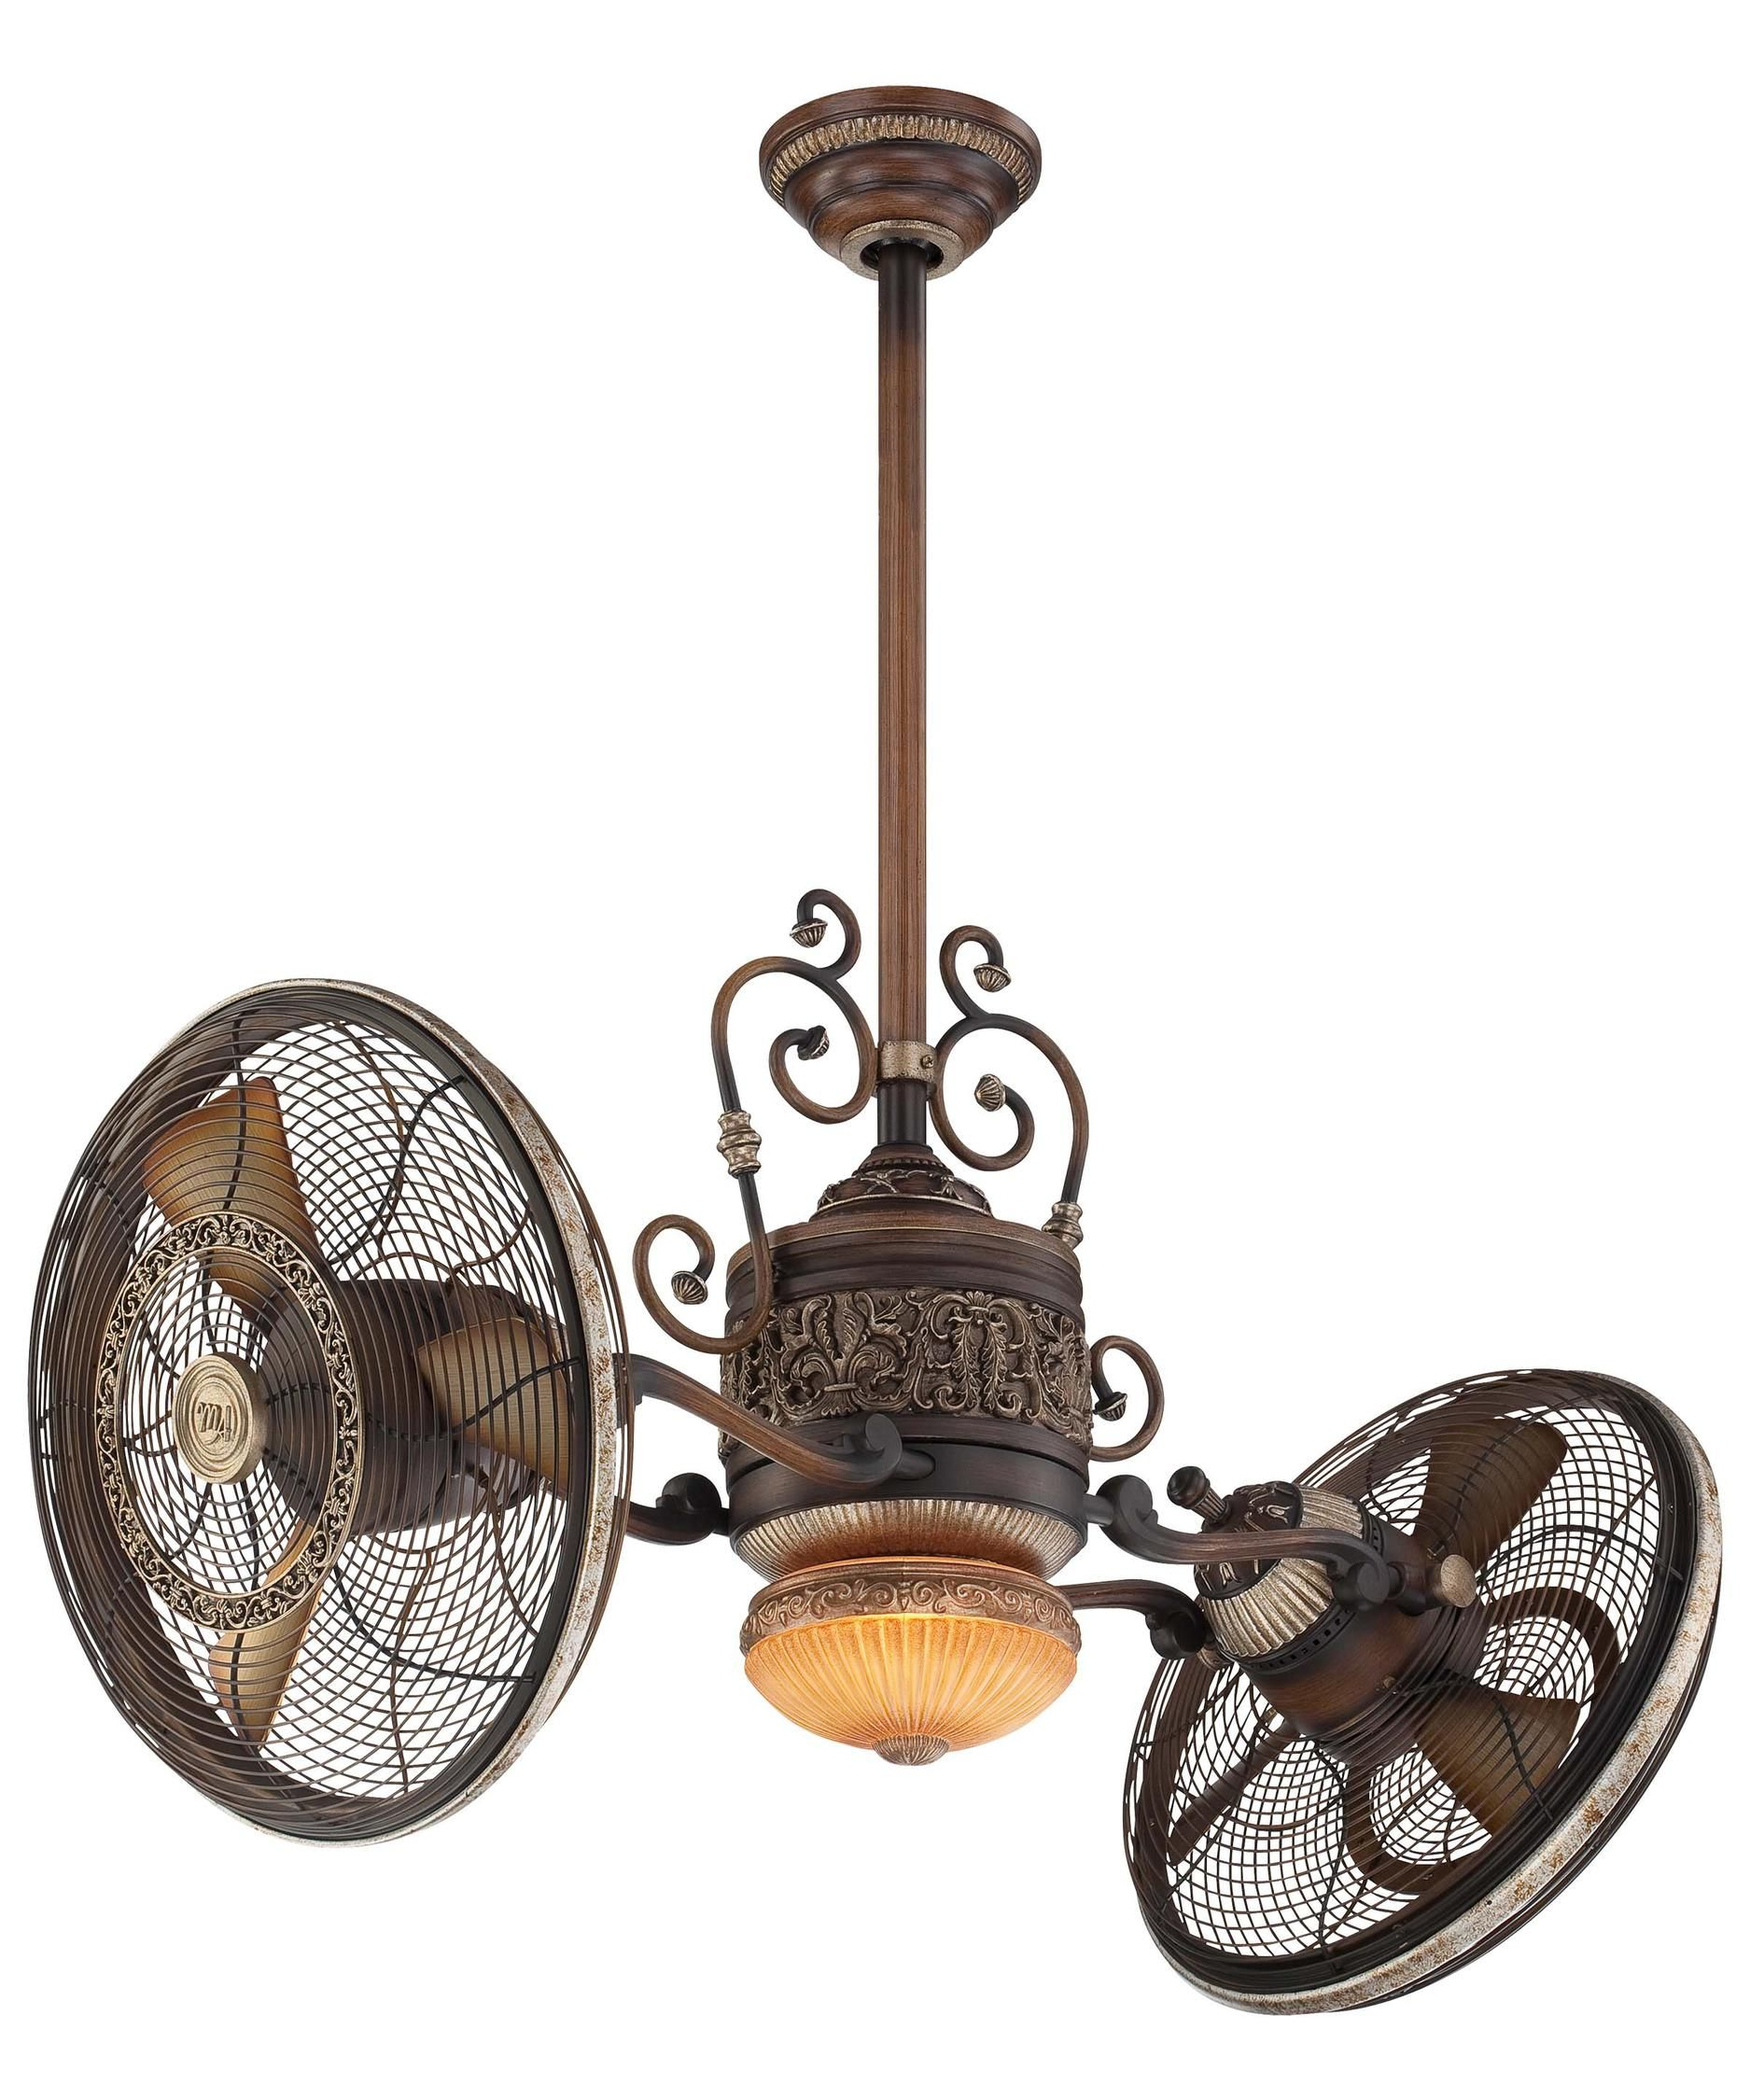 Minka aire traditional gyro 42 inch double ceiling fan with light kit minka aire f502 traditional gyro double ceiling fan aloadofball Choice Image